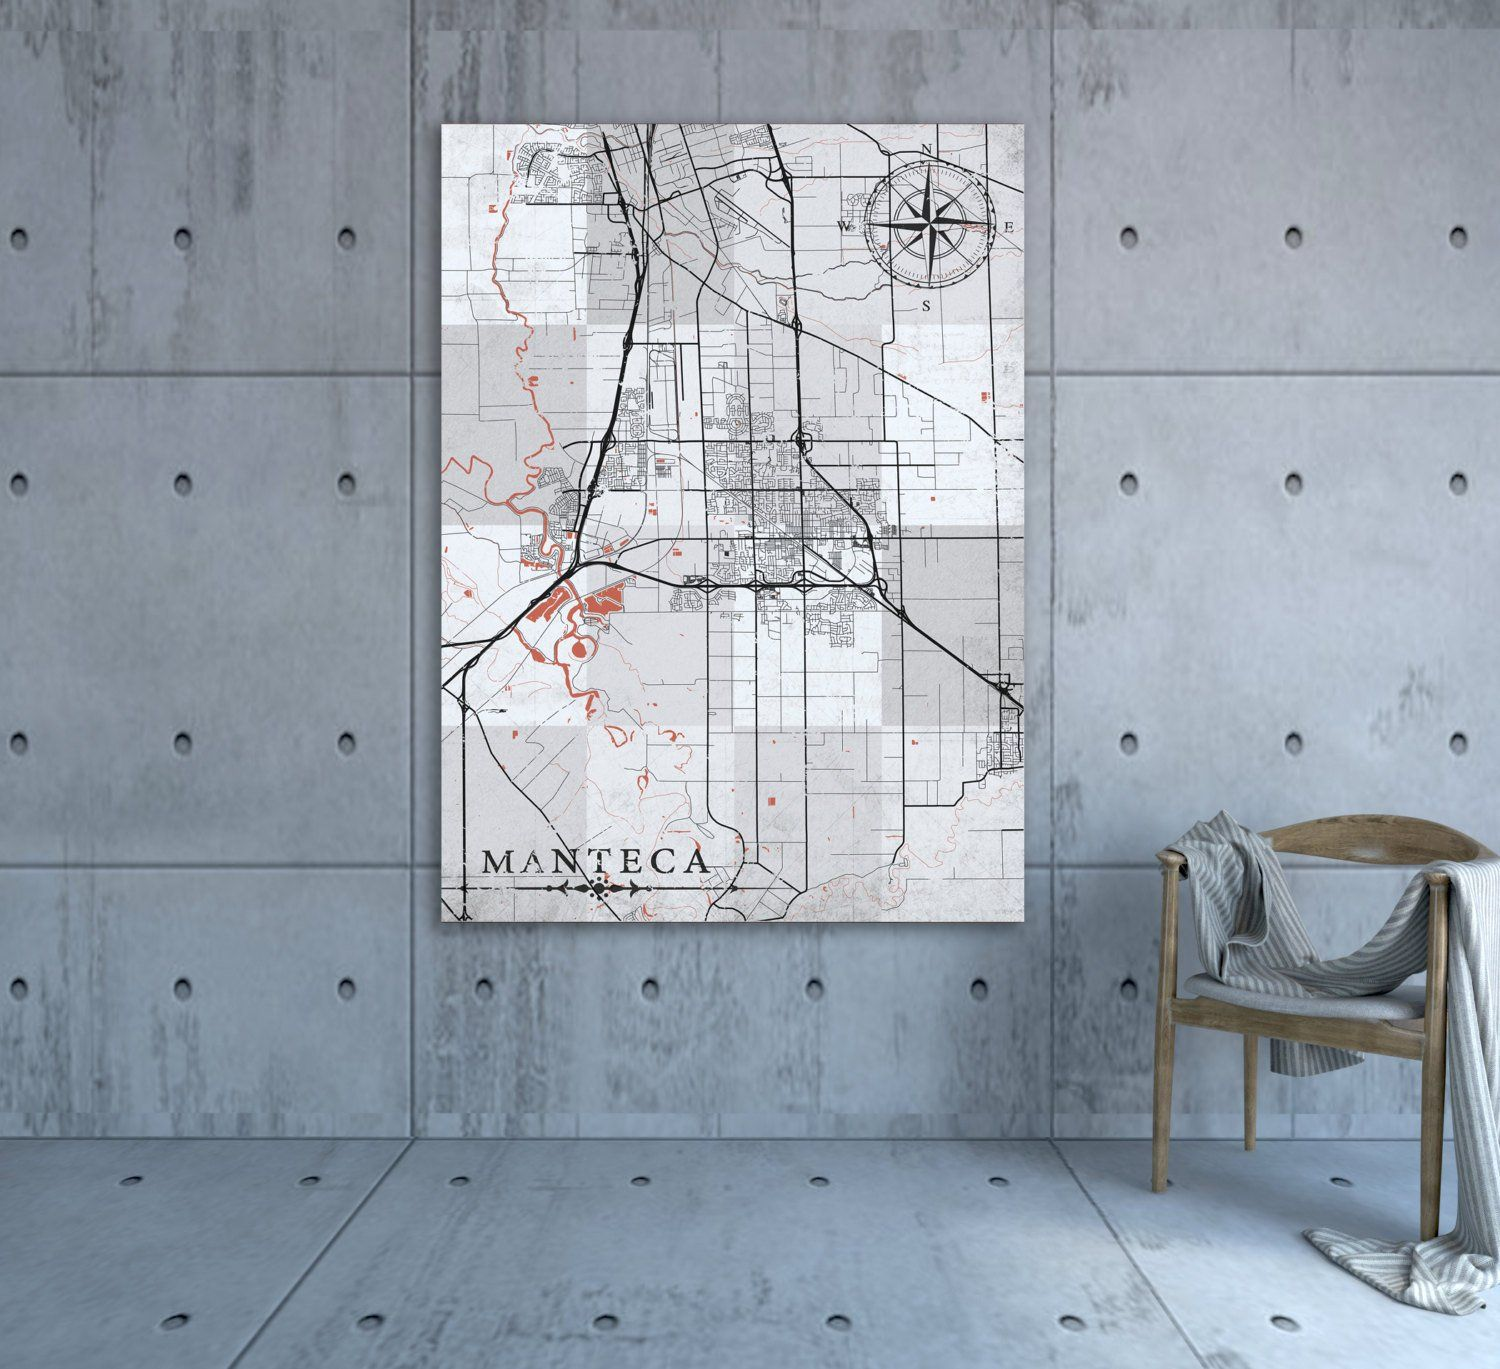 MANTECA CA Canvas Print California Vintage map City Town ... on stockton map, linden map, sanger map, santee map, escalon map, burney map, colton map, berkeley map, woodlake map, milpitas map, lemoore map, french camp map, garberville map, marina map, brentwood map, fullerton map, port costa map, patterson map, avenal map, oakdale map,